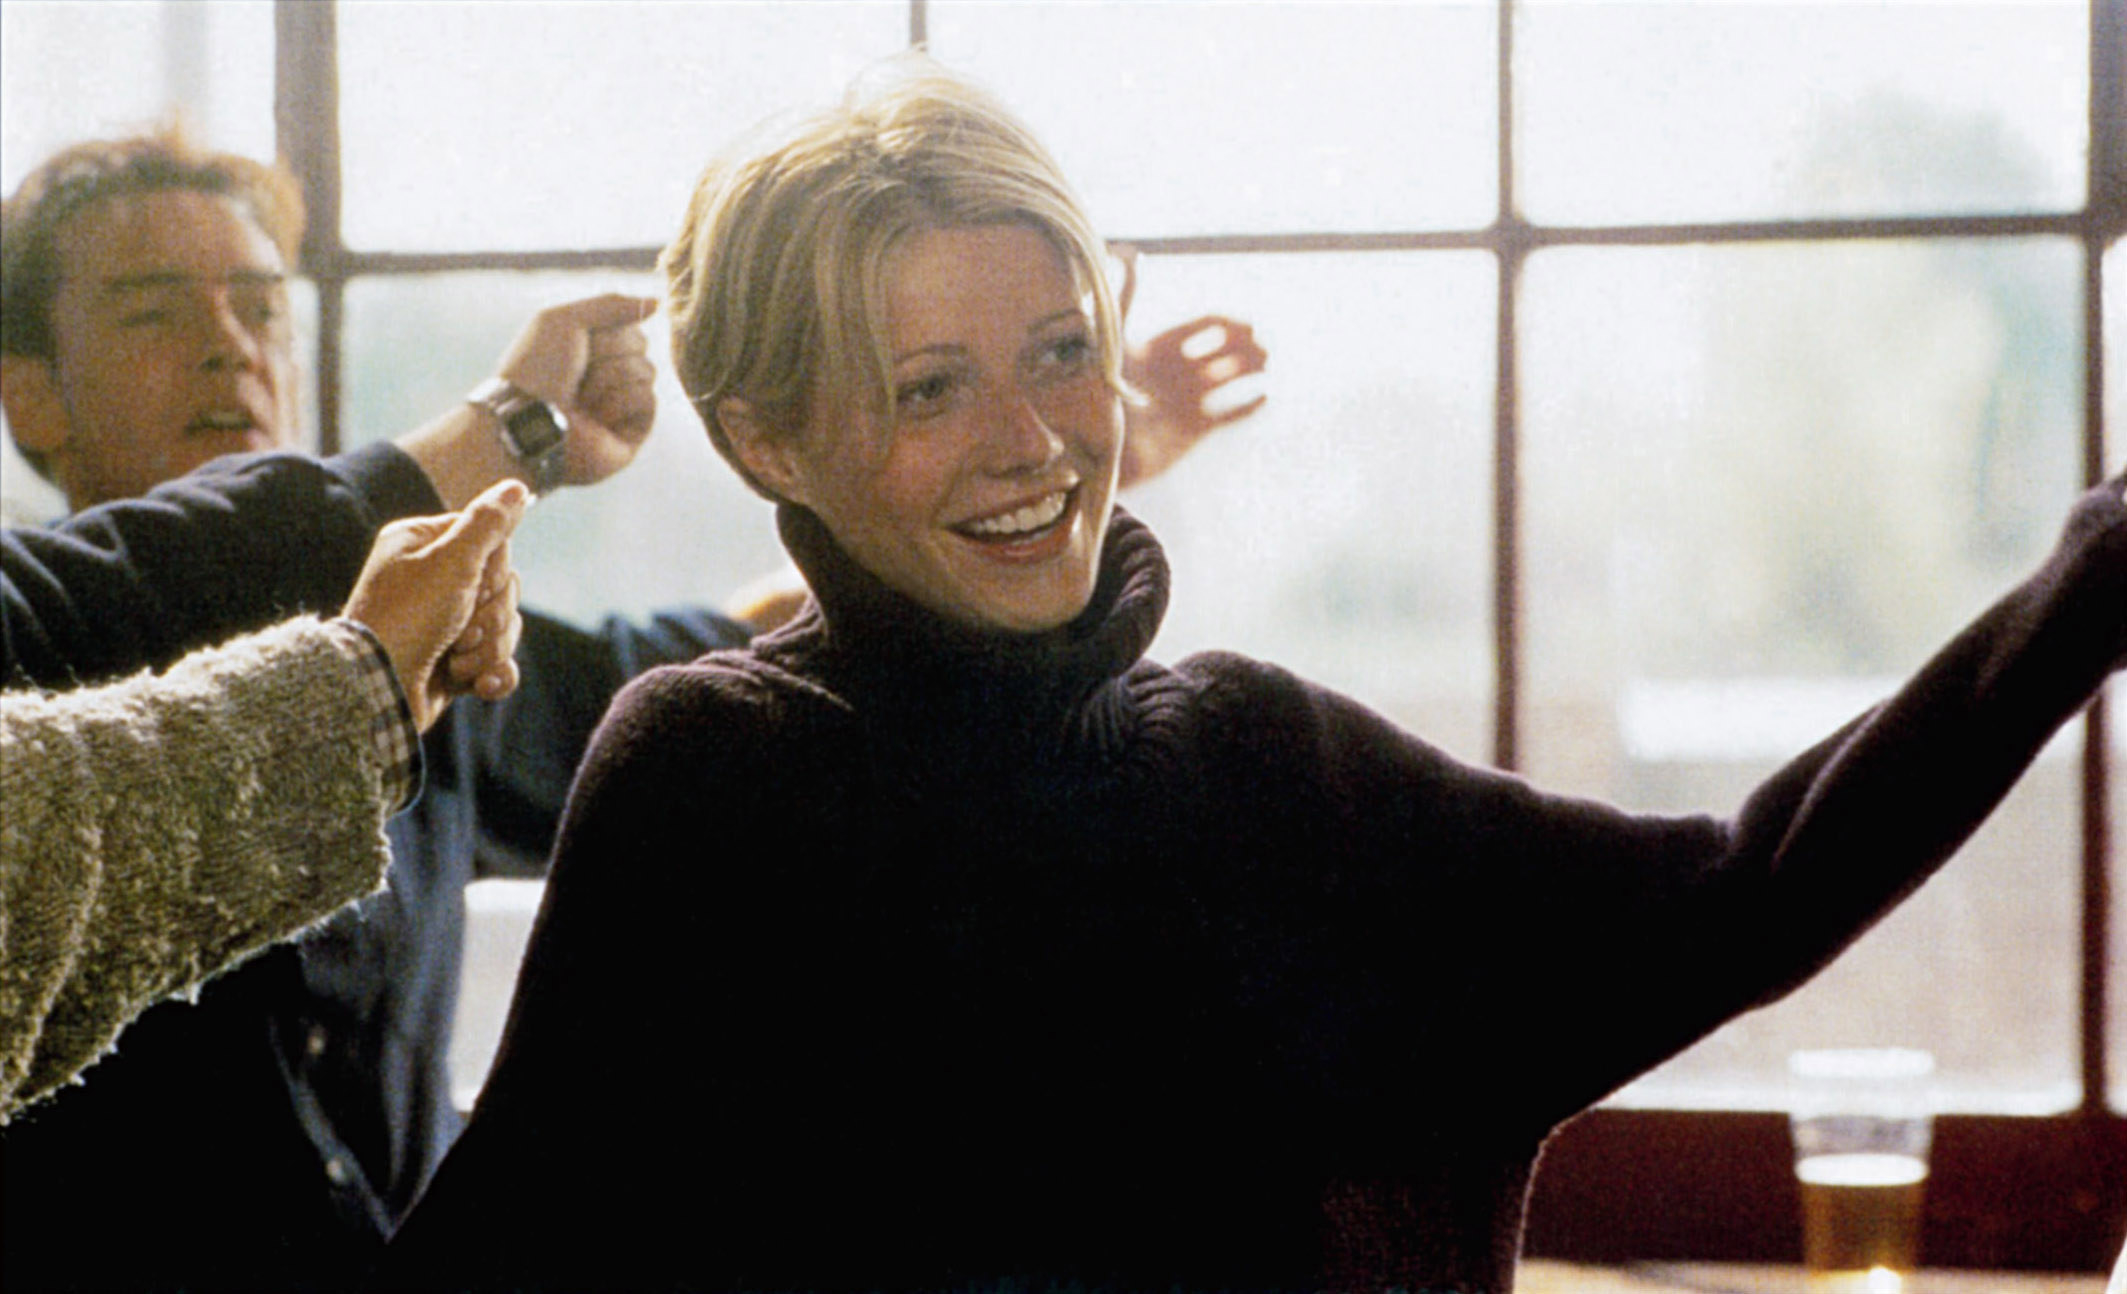 SLIDING DOORS, Gwyneth Paltrow, 1998